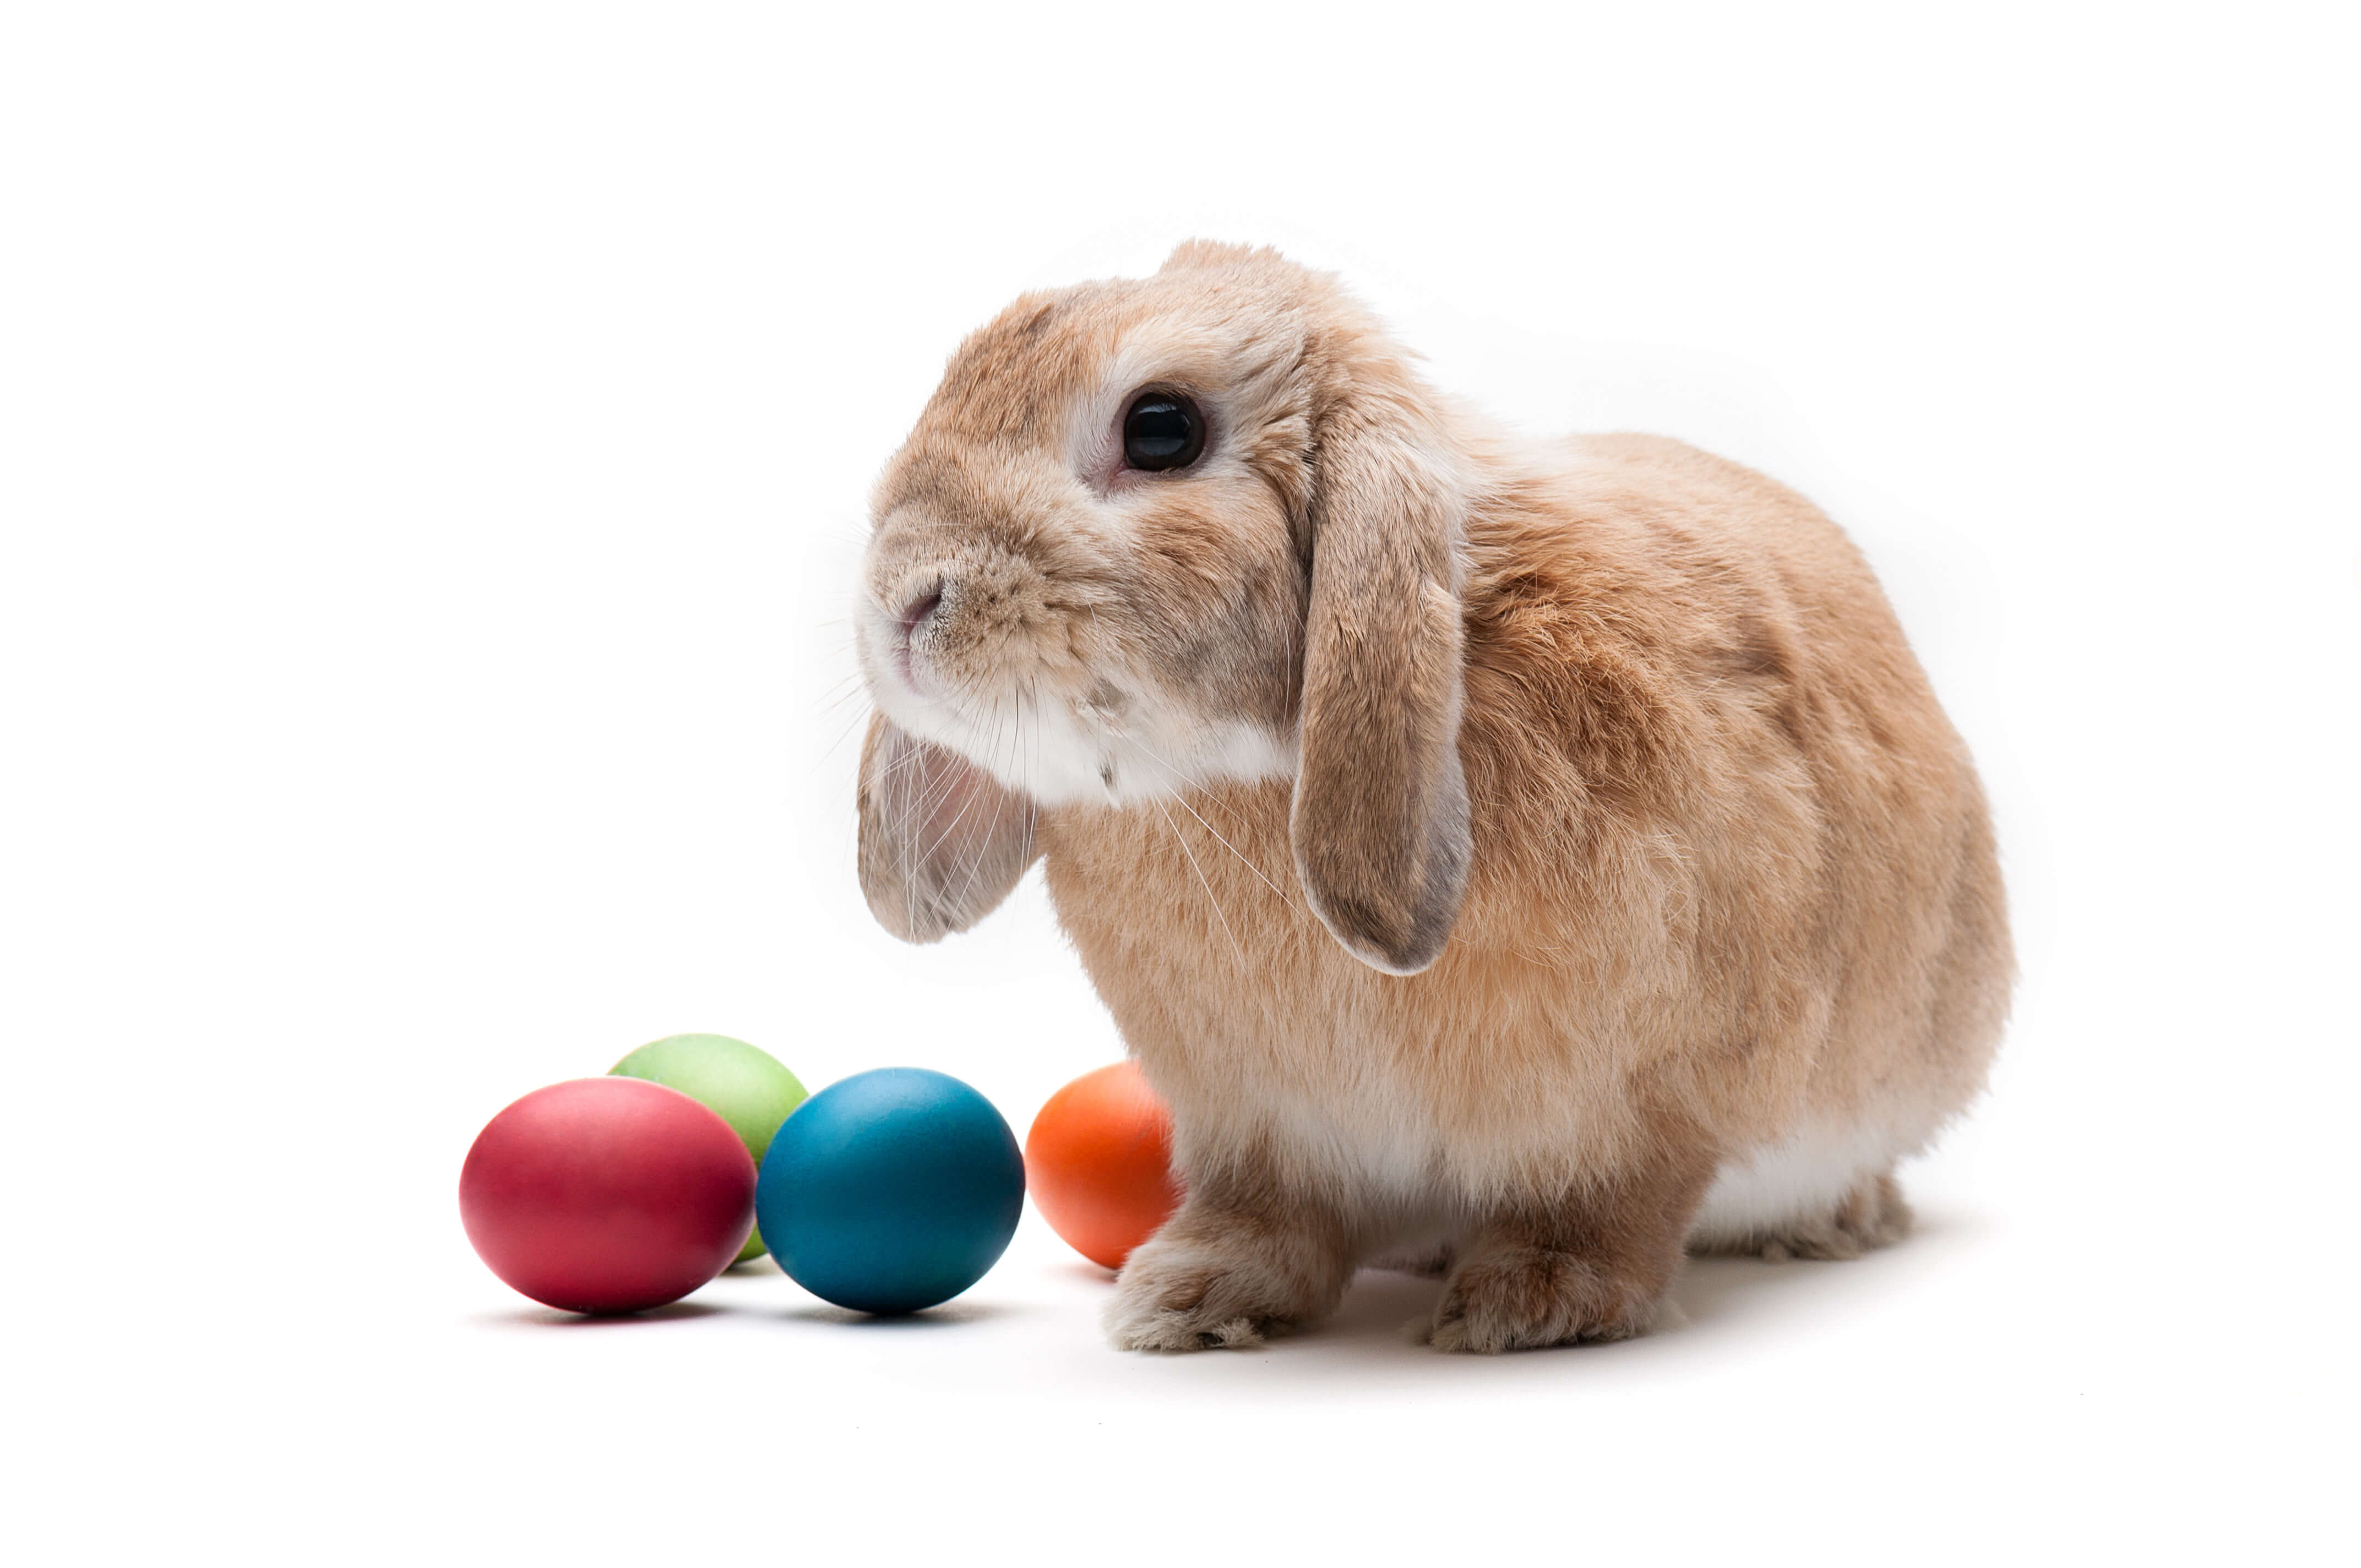 What came first the rabbit or the egg?